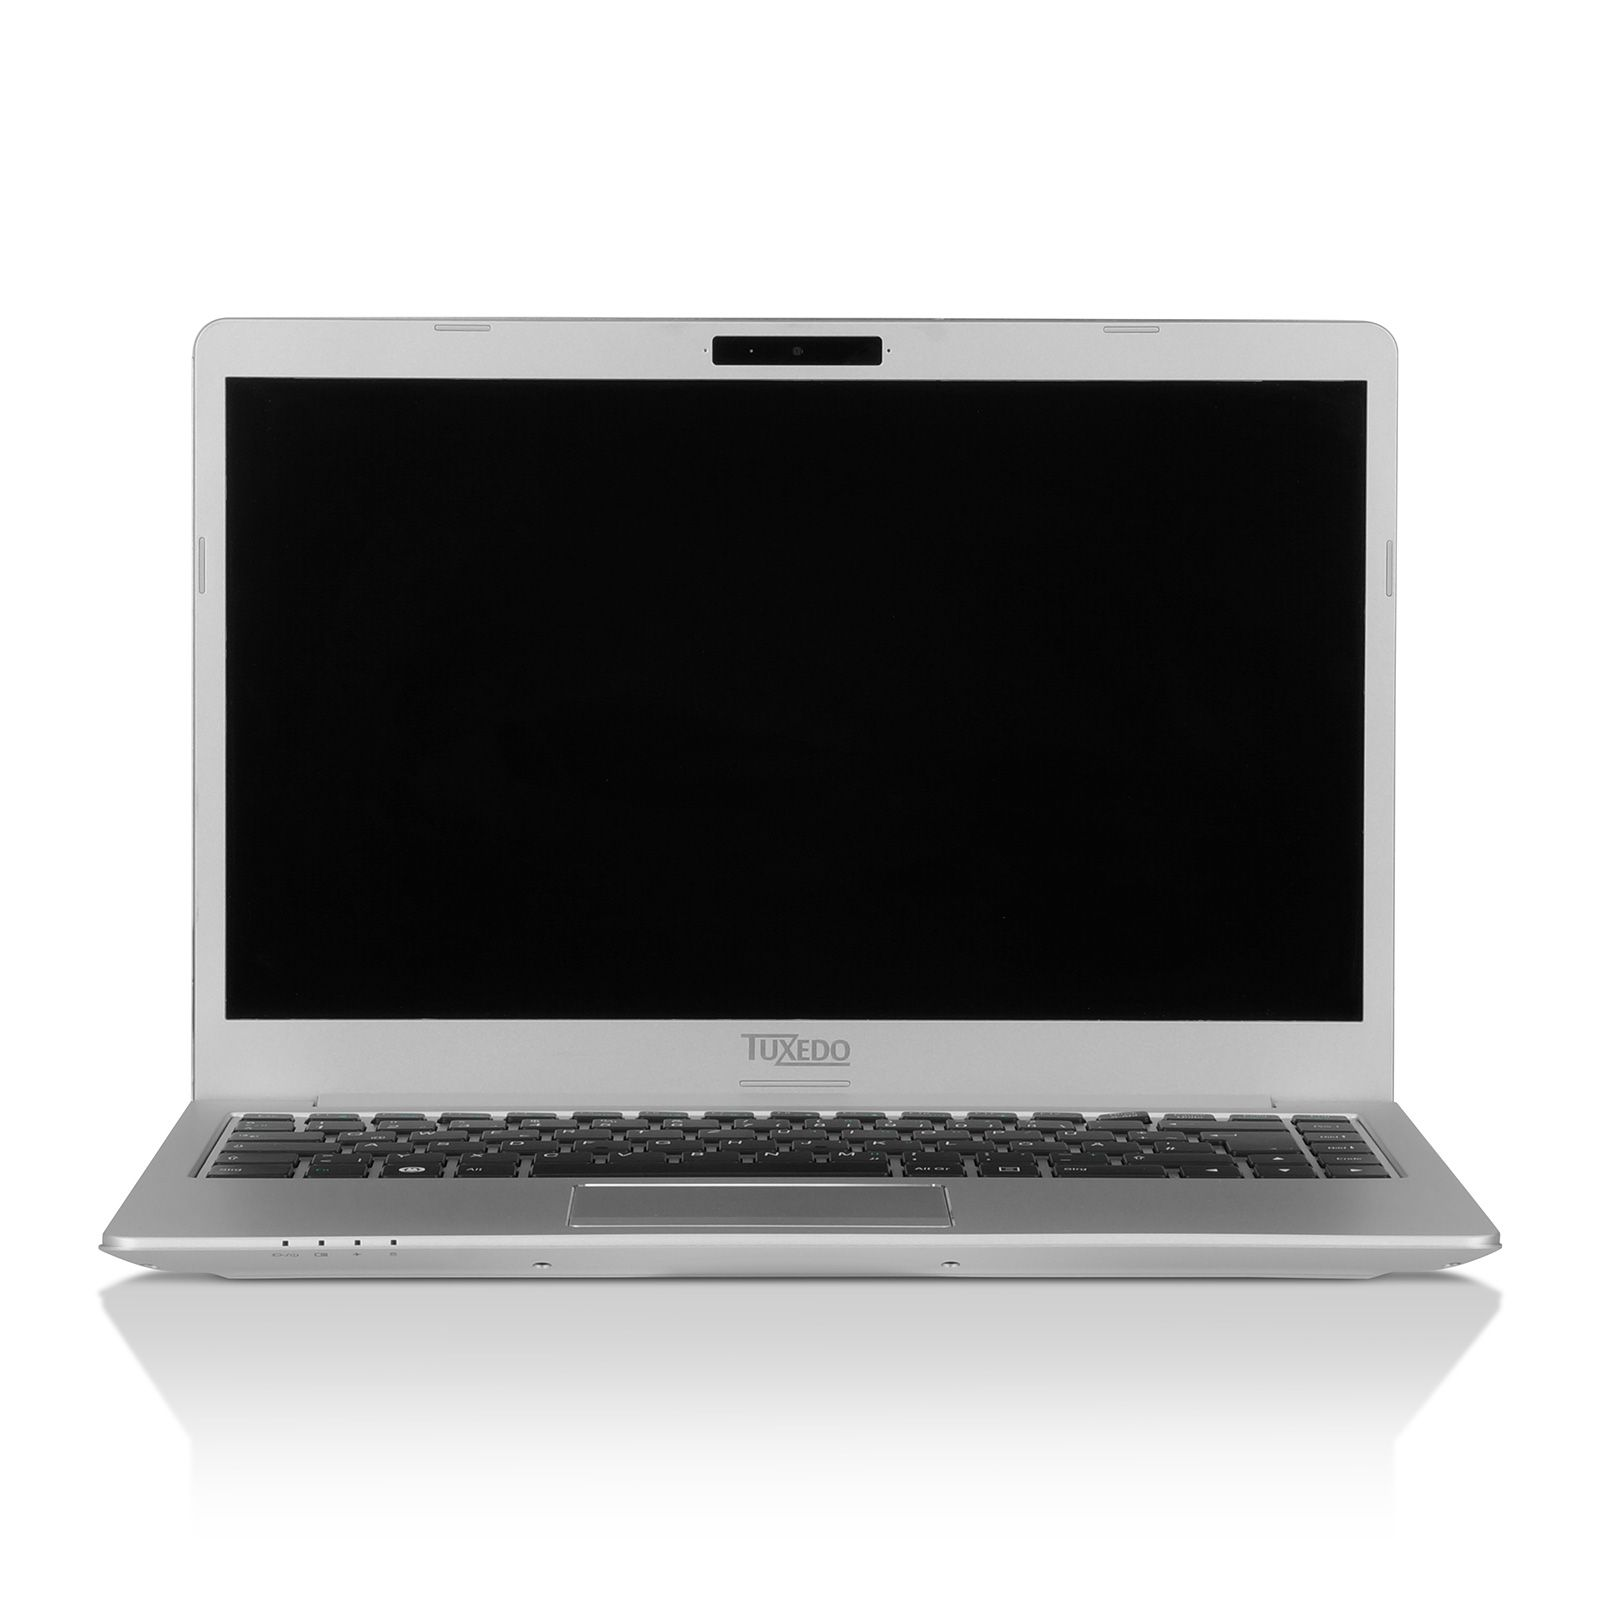 "TUXEDO InfinityBook Pro 14 v4 - 14"" non-glare Full-HD IPS + aluminium chassis + bis Intel Core i7-Quad-Core + max. 32GB RAM + max. two HDD/SSD + max. 12h battery + USB-C Thunderbolt 3"